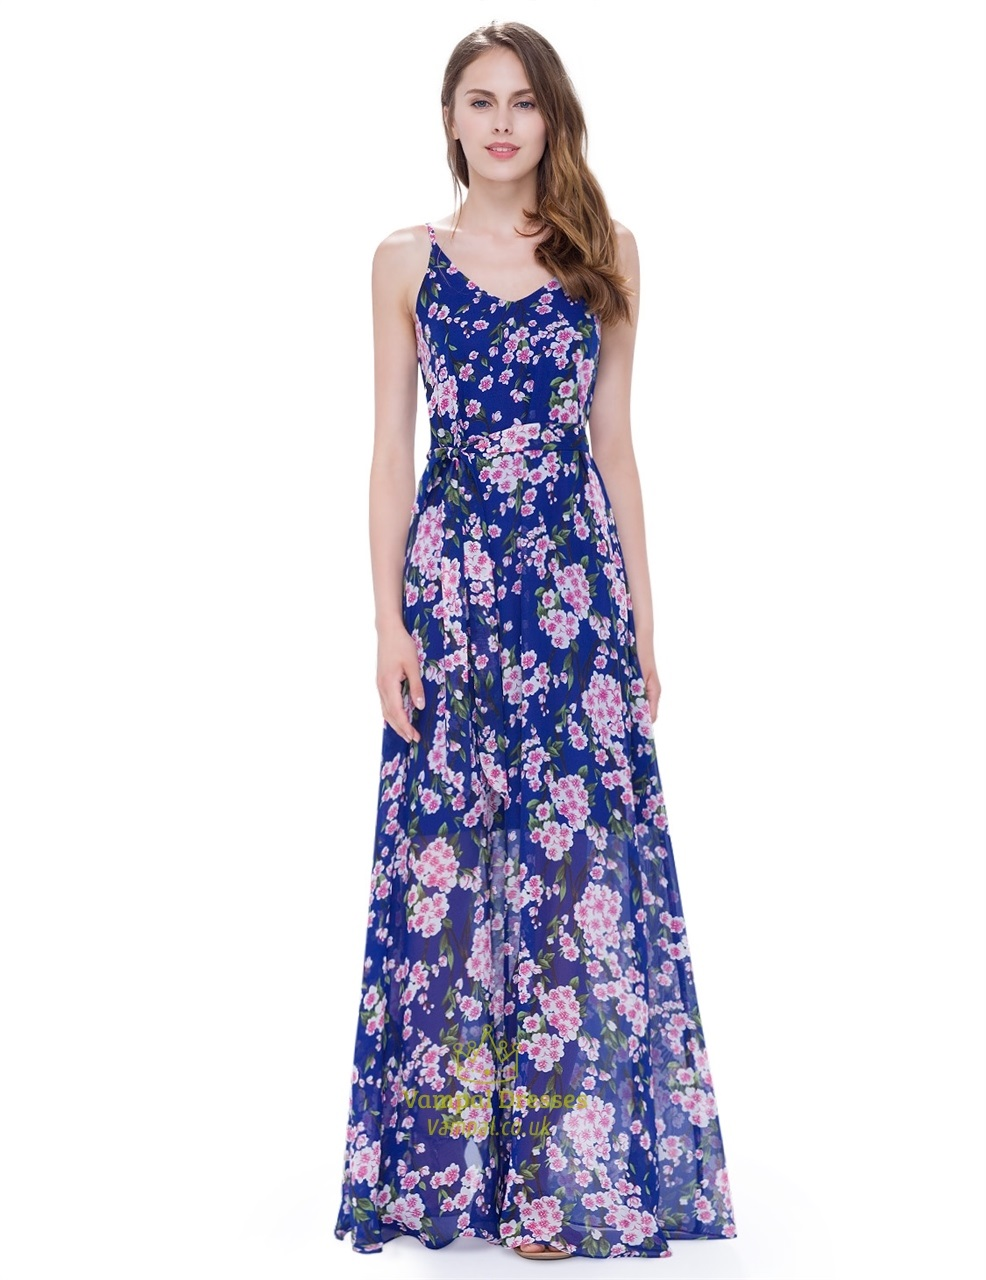 Which kind of dresses do I need to be buying this summer?